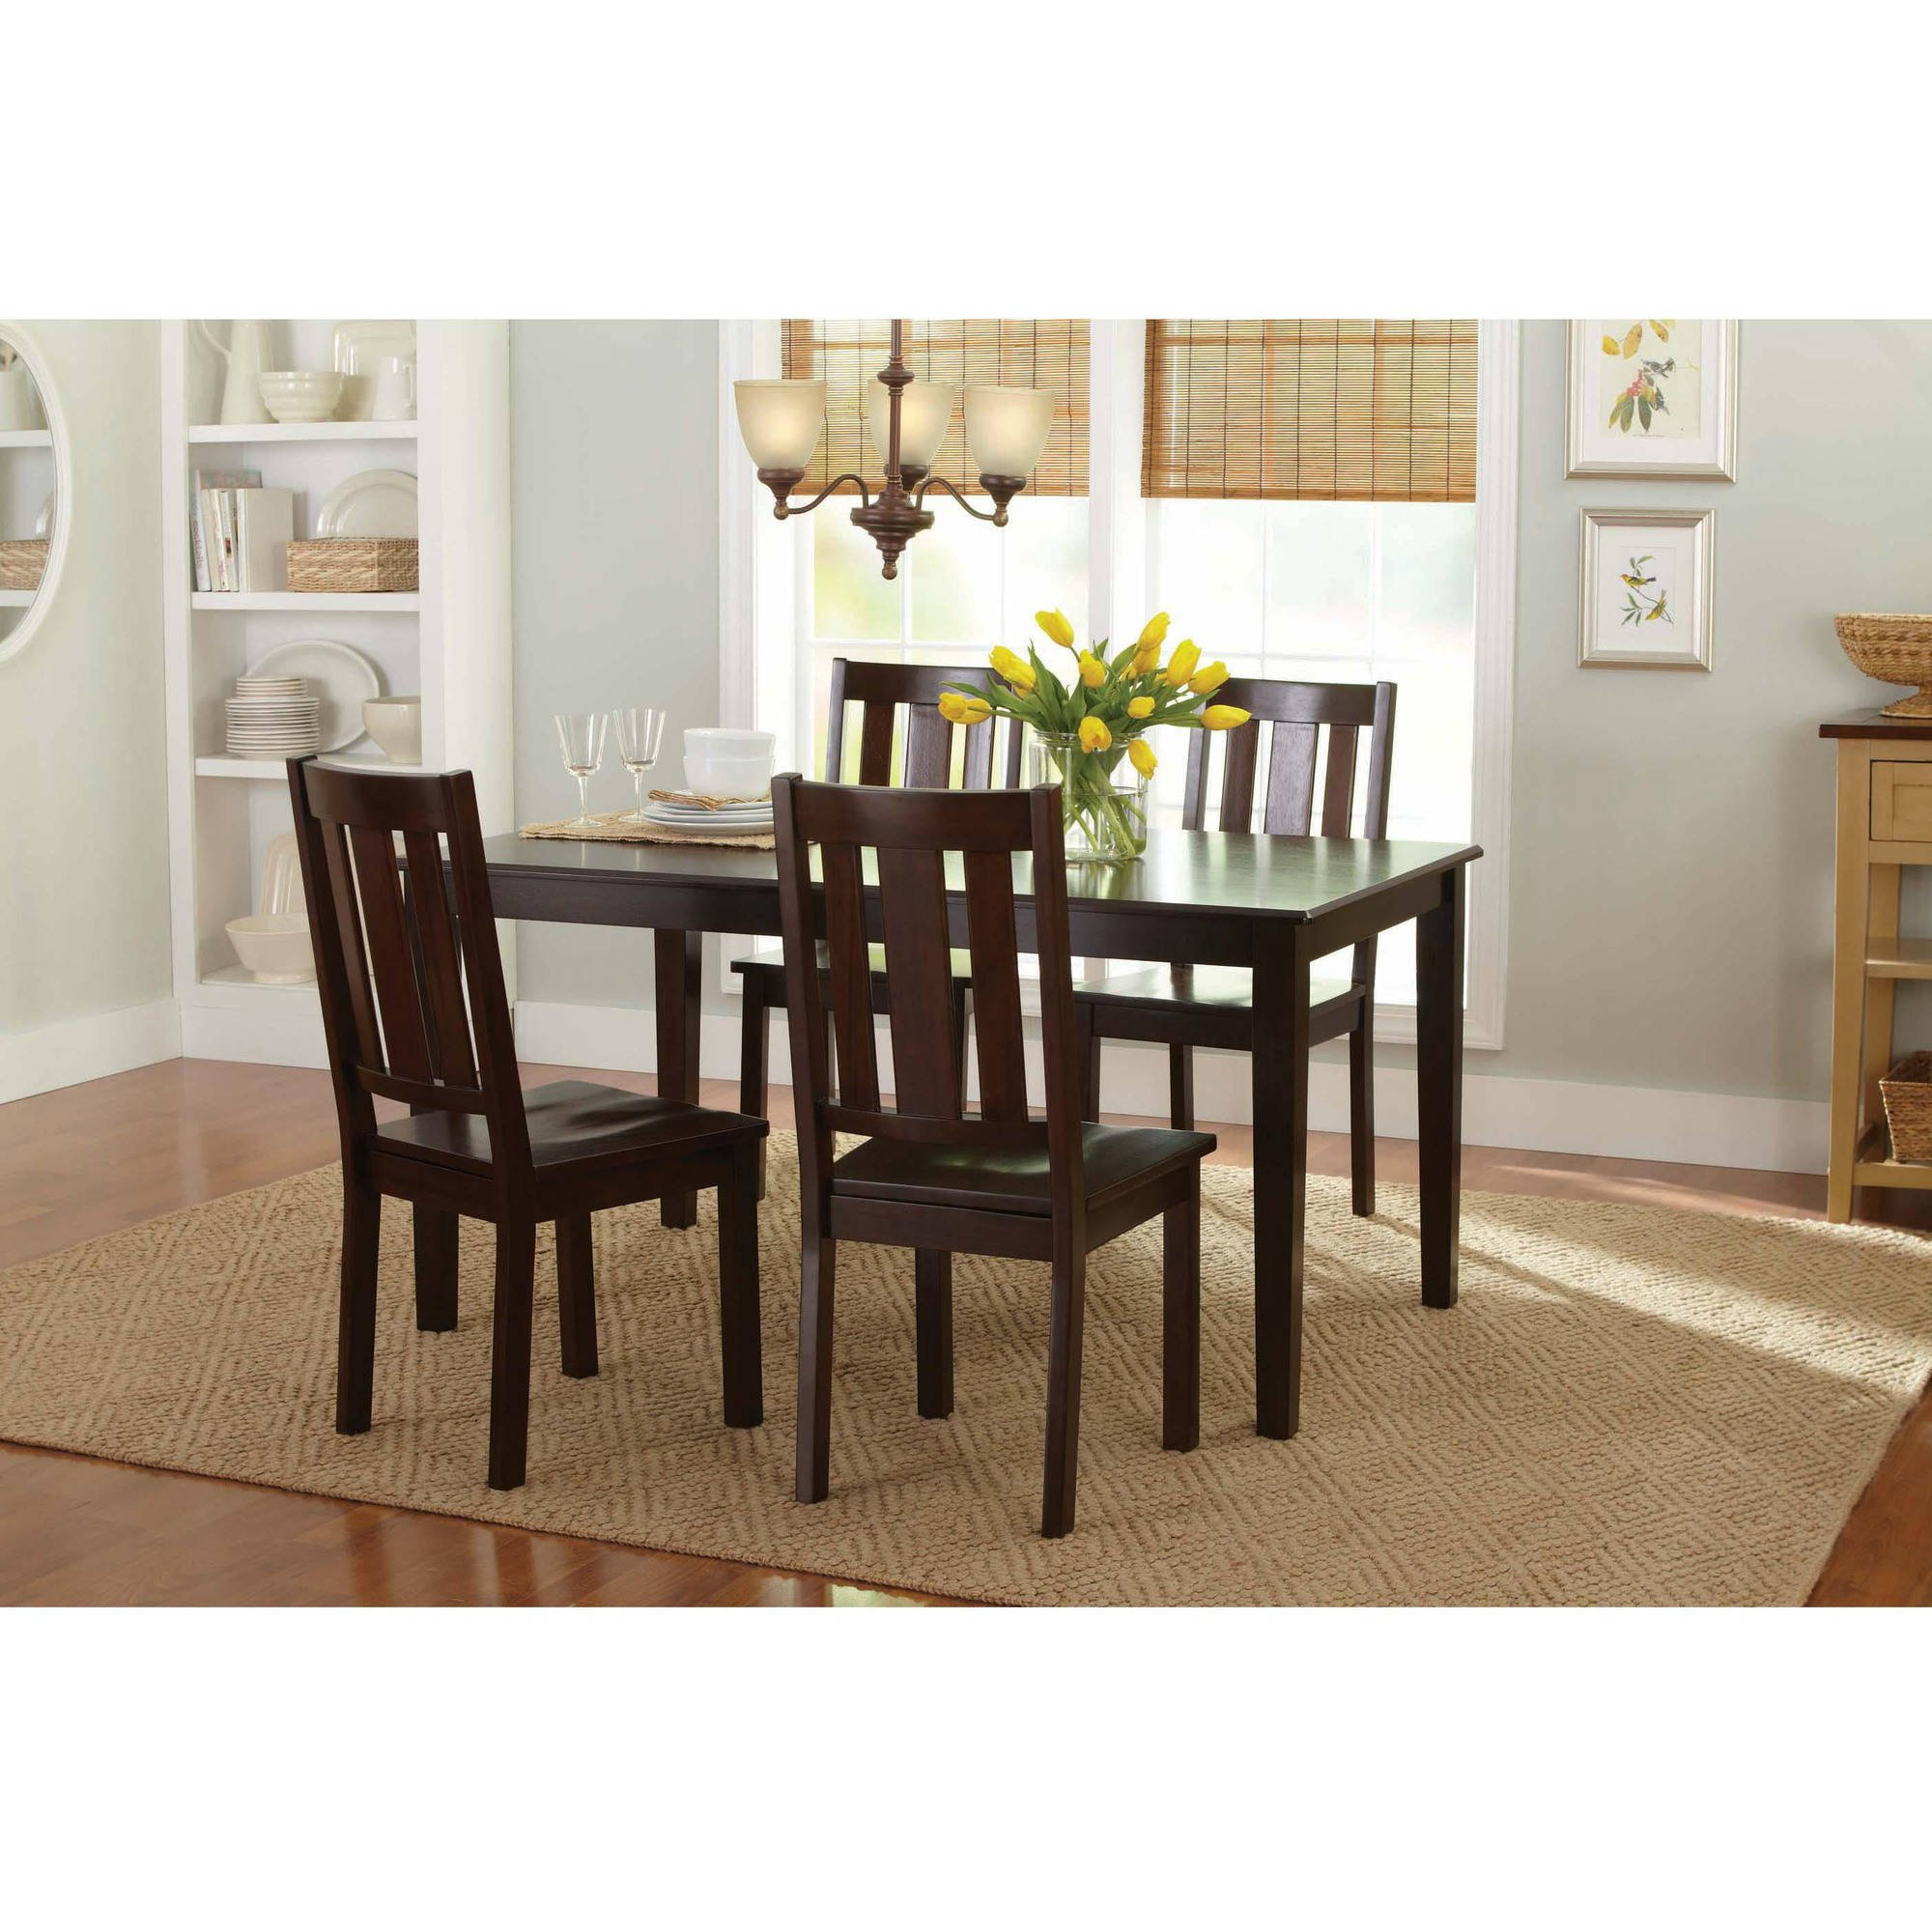 Better Homes and Gardens Bankston Dining Chairs (Set of 2 Mocha) by Better Homes & Gardens